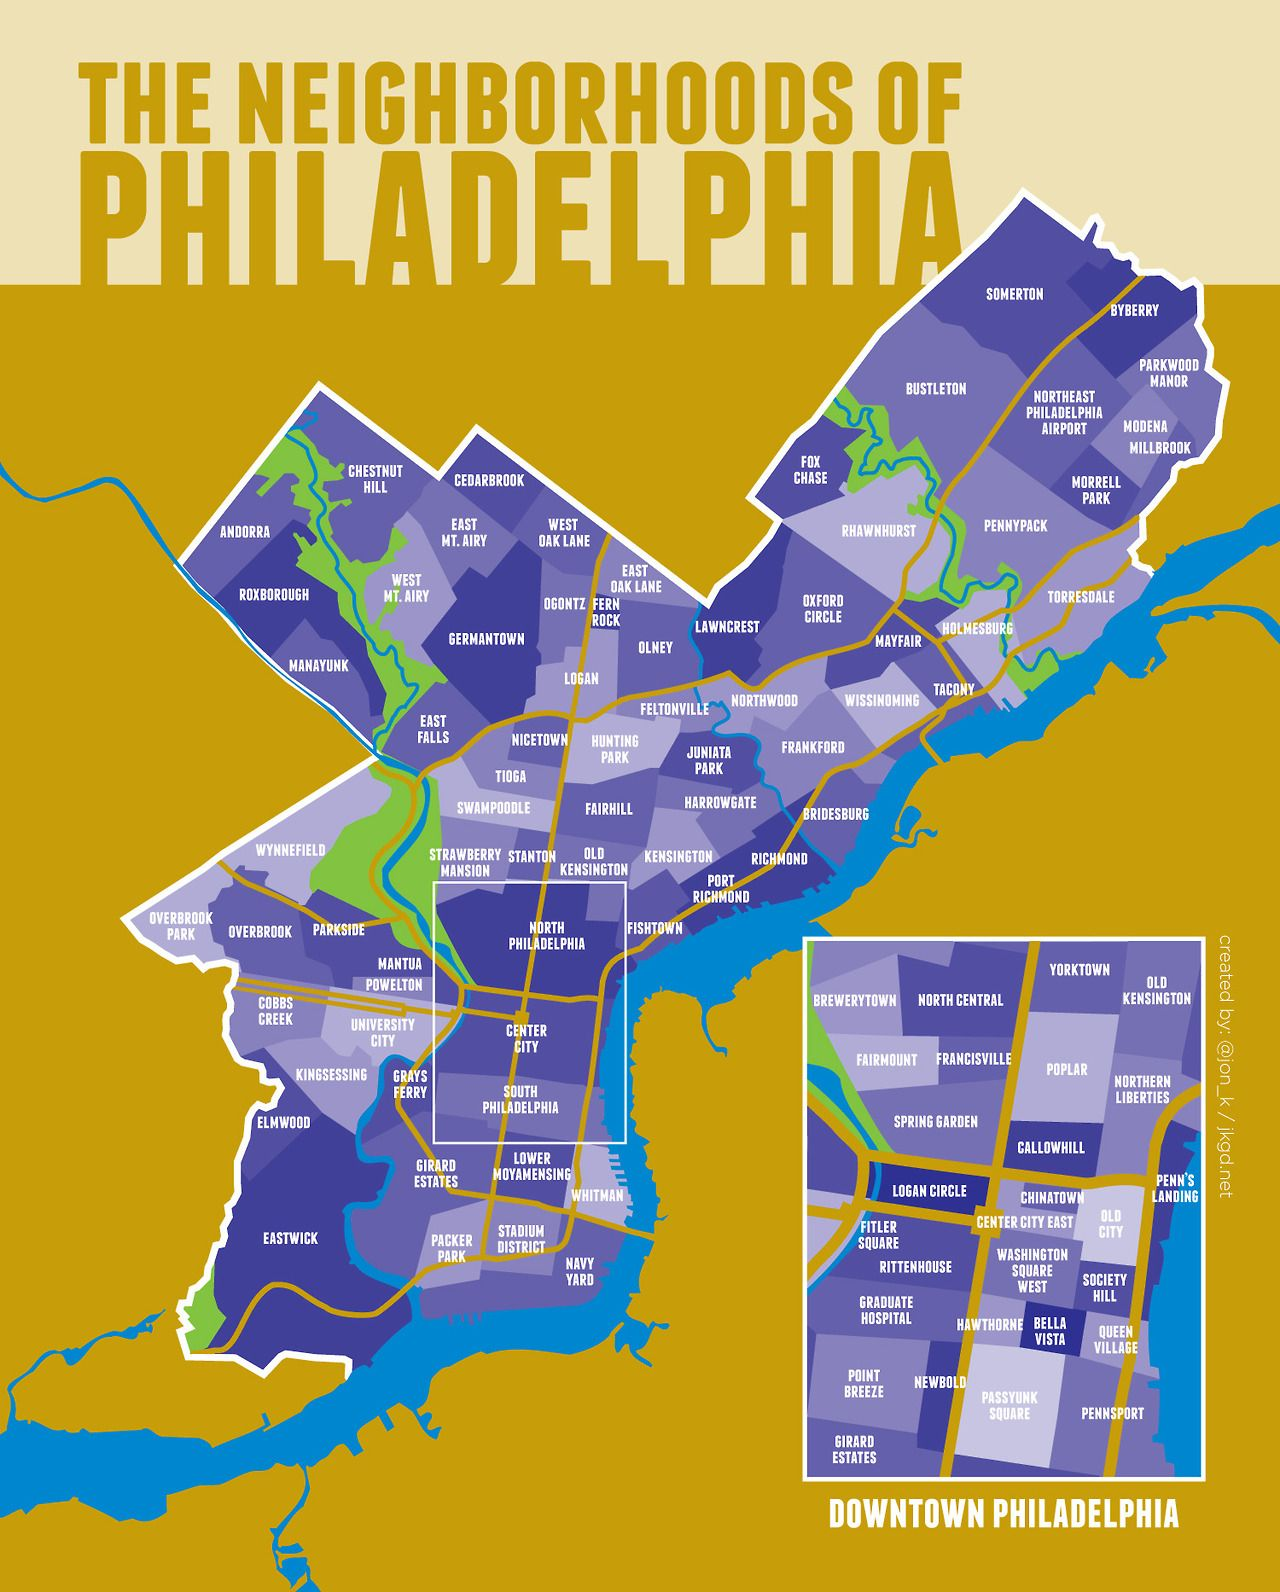 Philadelphia Neighborhoods Map One take on Philadelphia neighborhoods | City of Brotherly Love